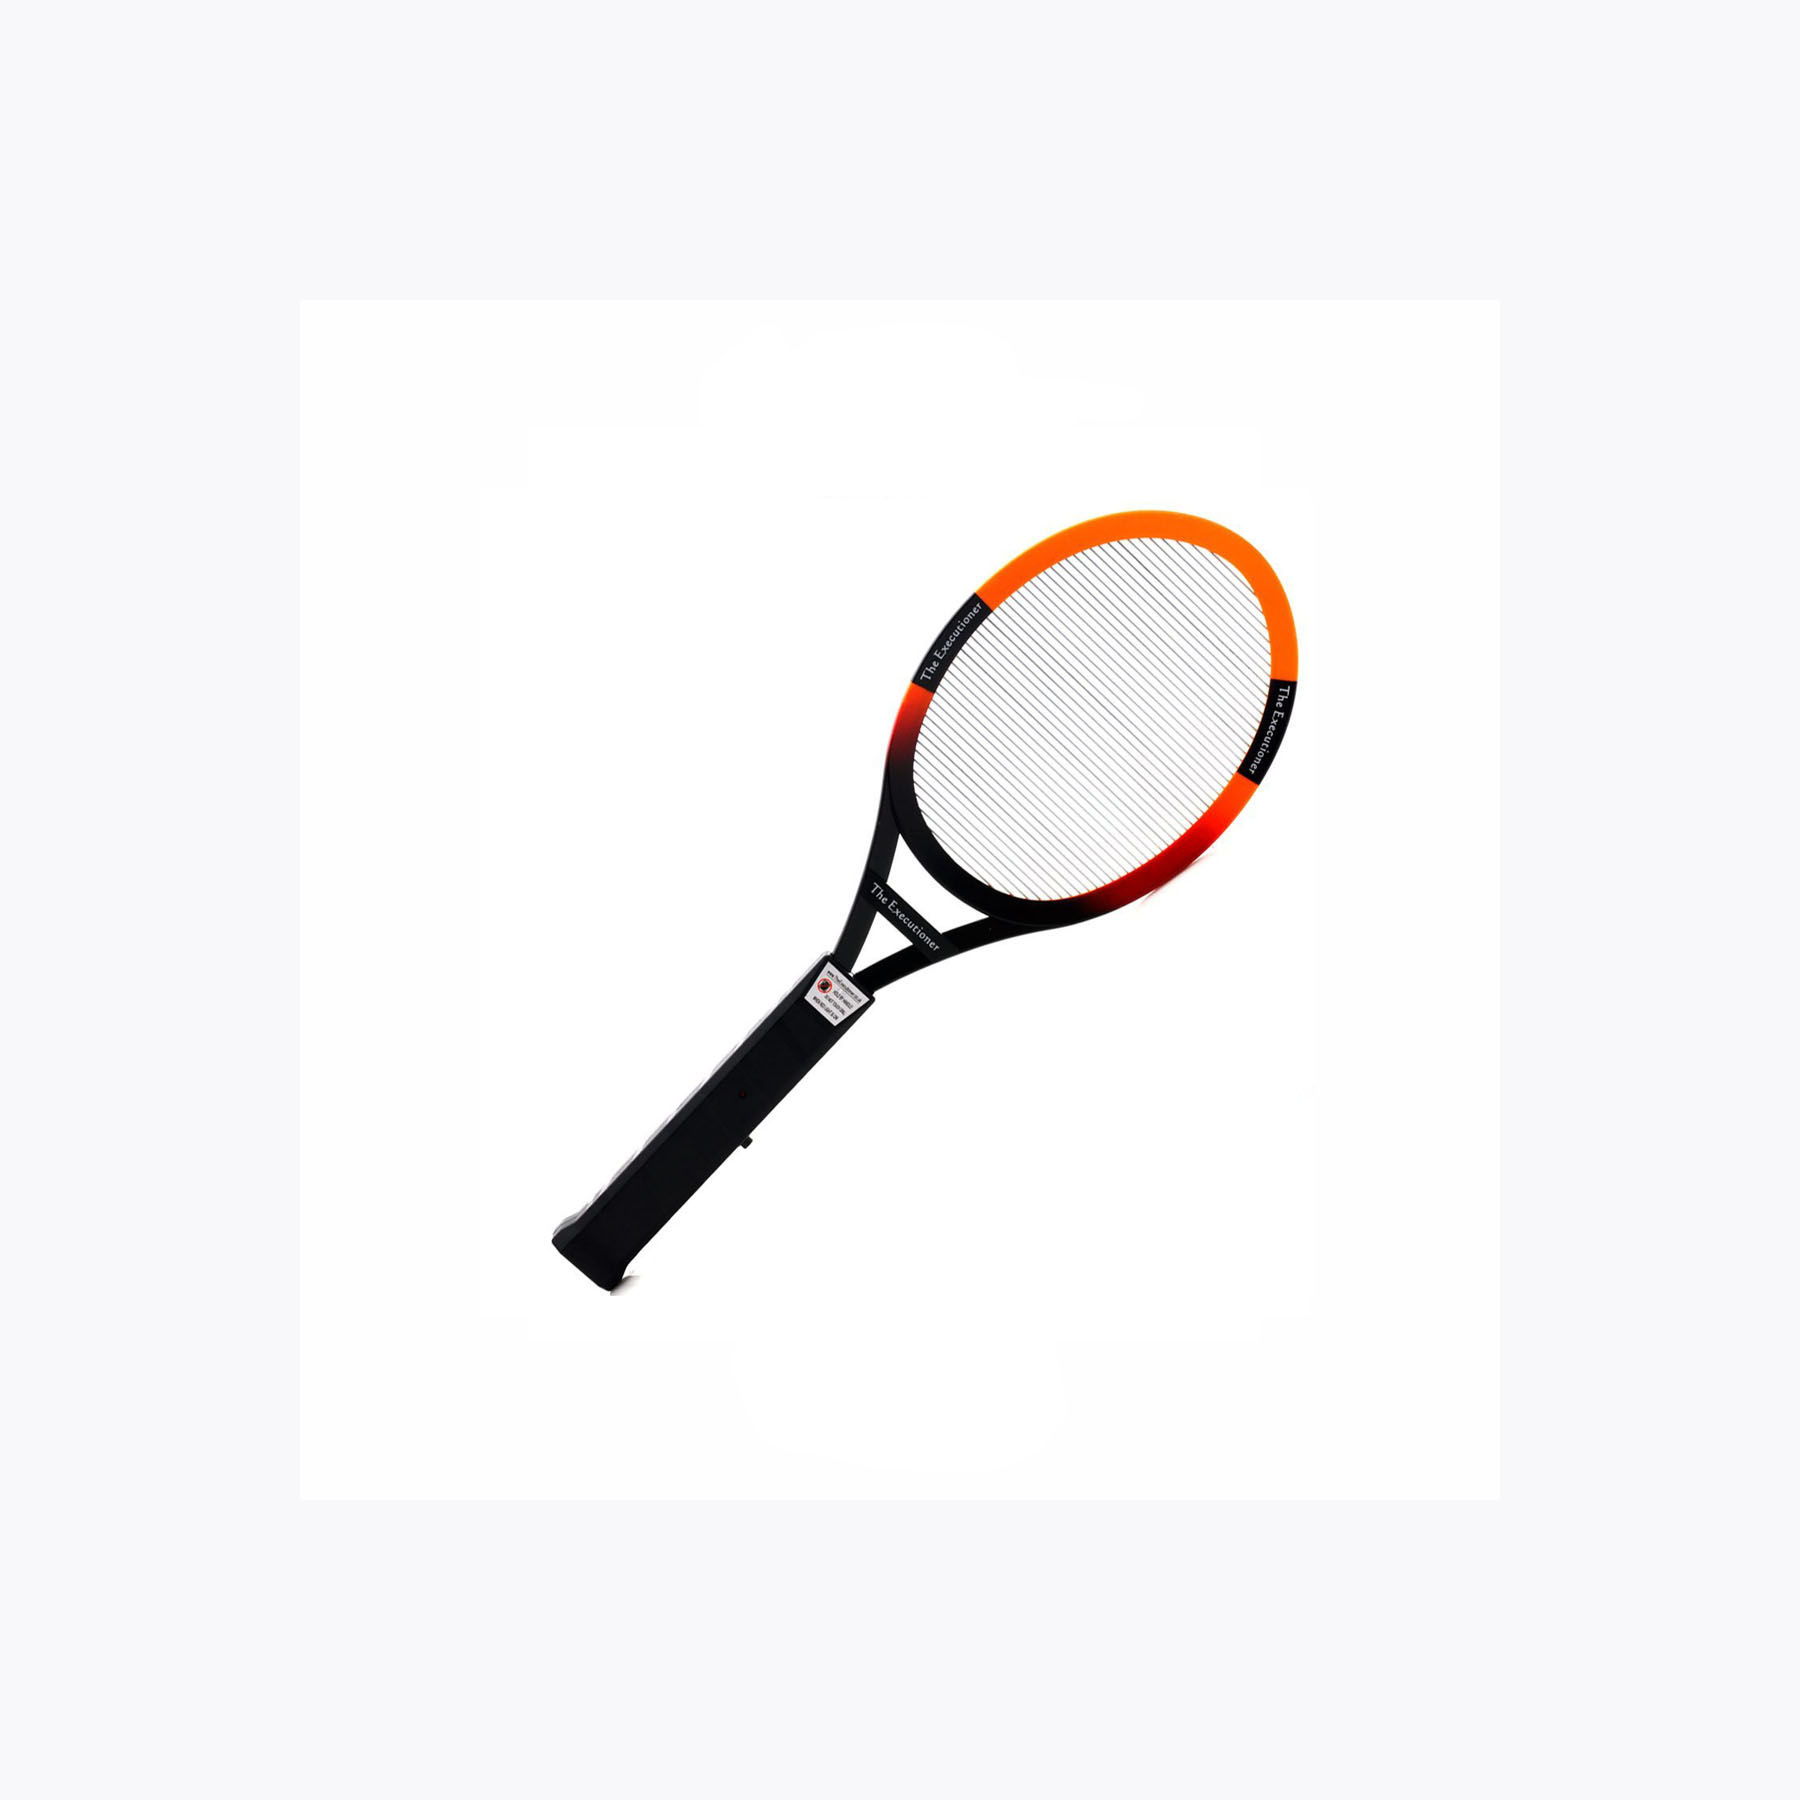 Fly Swatter Executioner